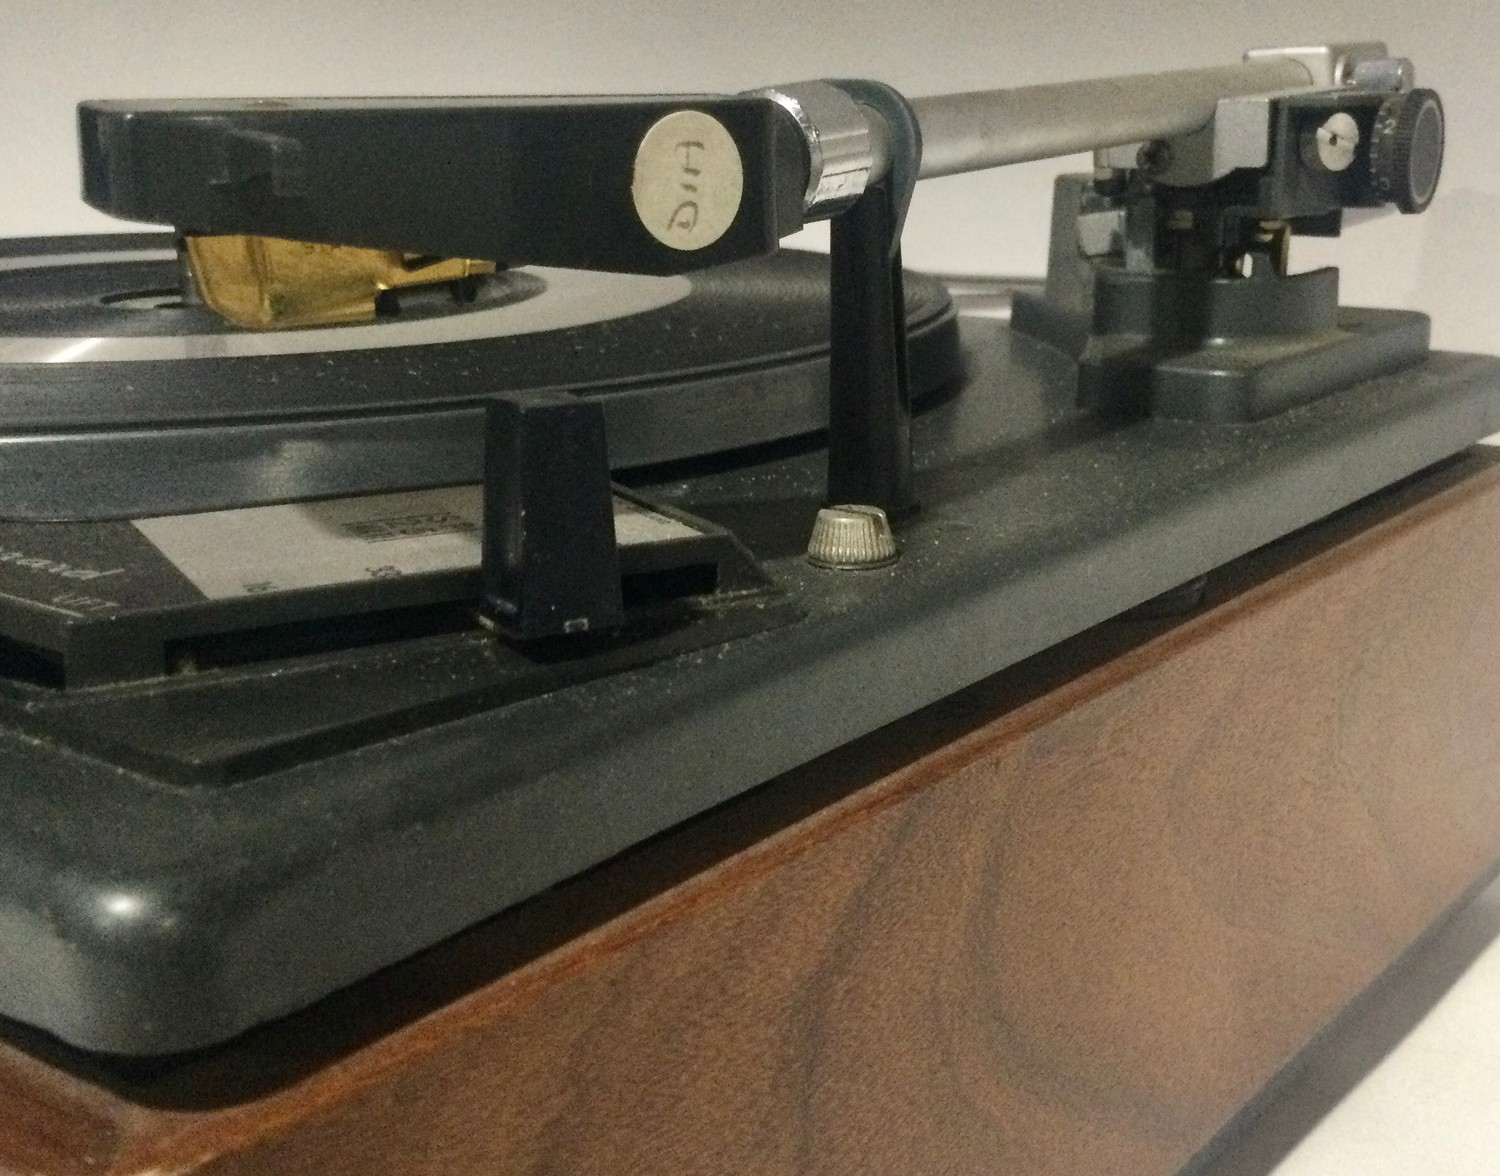 Garrard SP25 mk2 turntable / record player. Comes in wooden plinth with Perspex lid. - Image 4 of 4